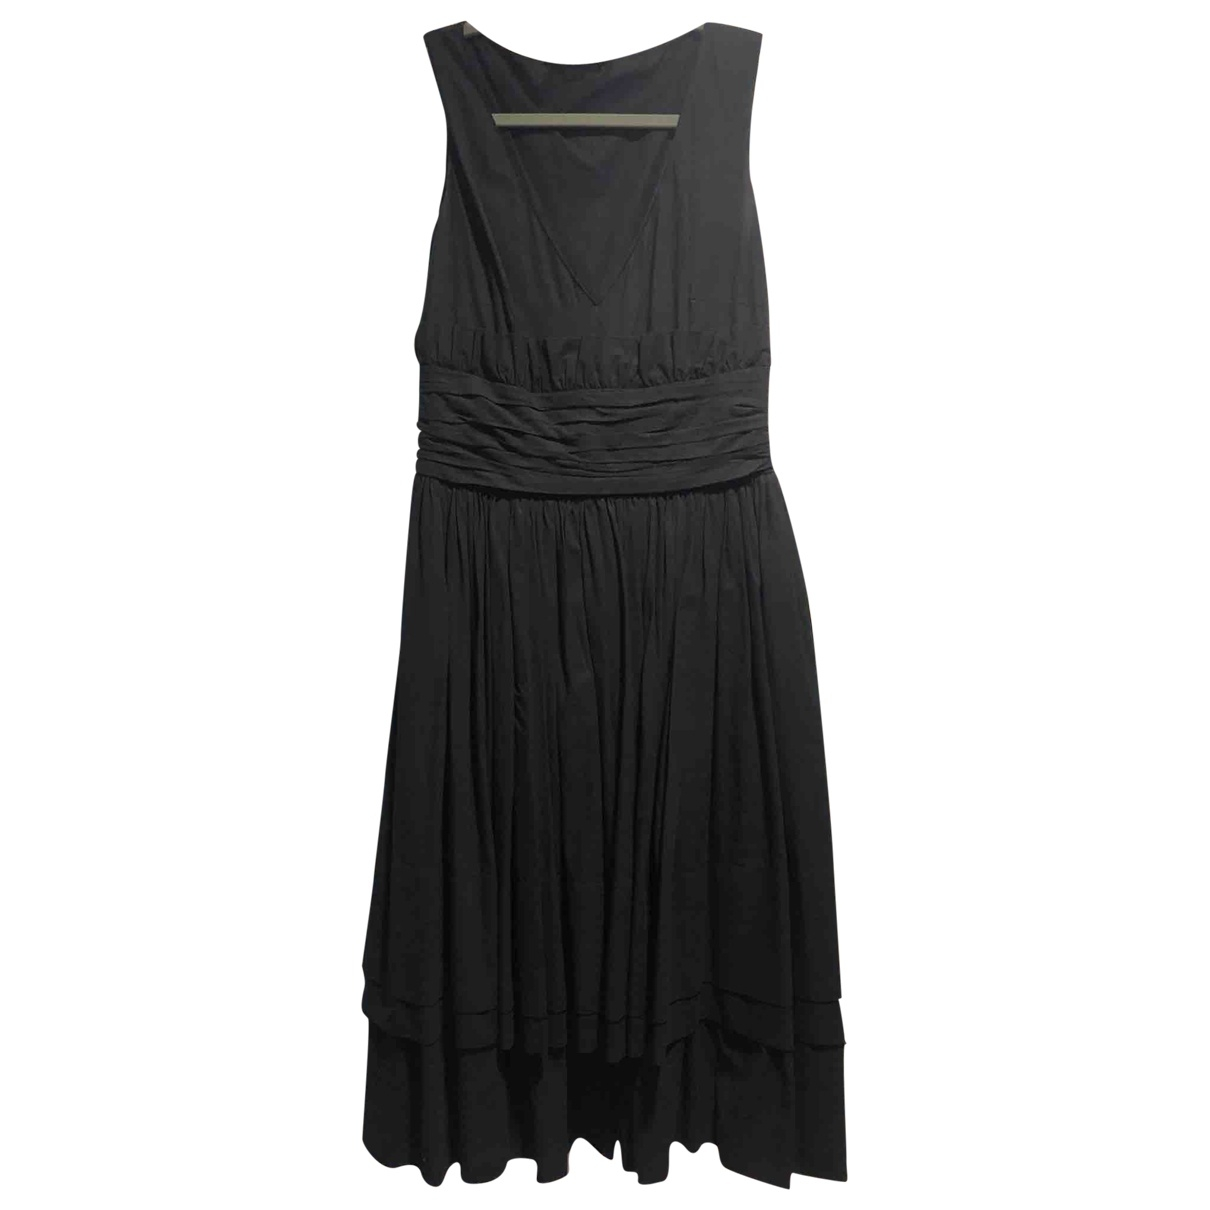 Prada \N Black Cotton dress for Women 40 IT